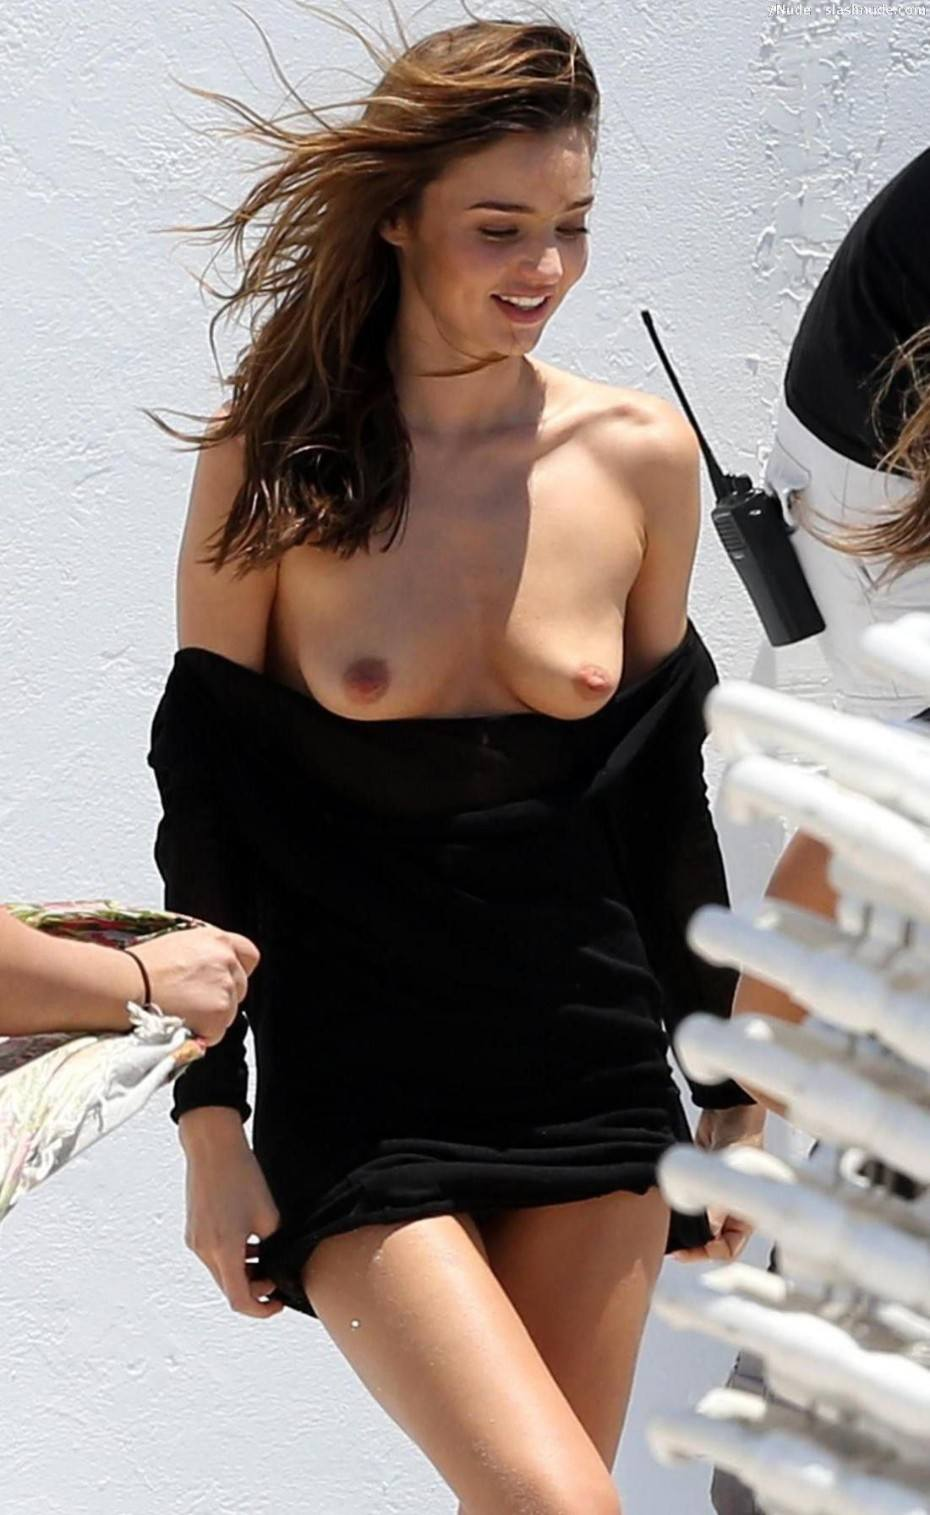 Miranda Kerr Breasts Slip Out During Outdoor Photoshoot